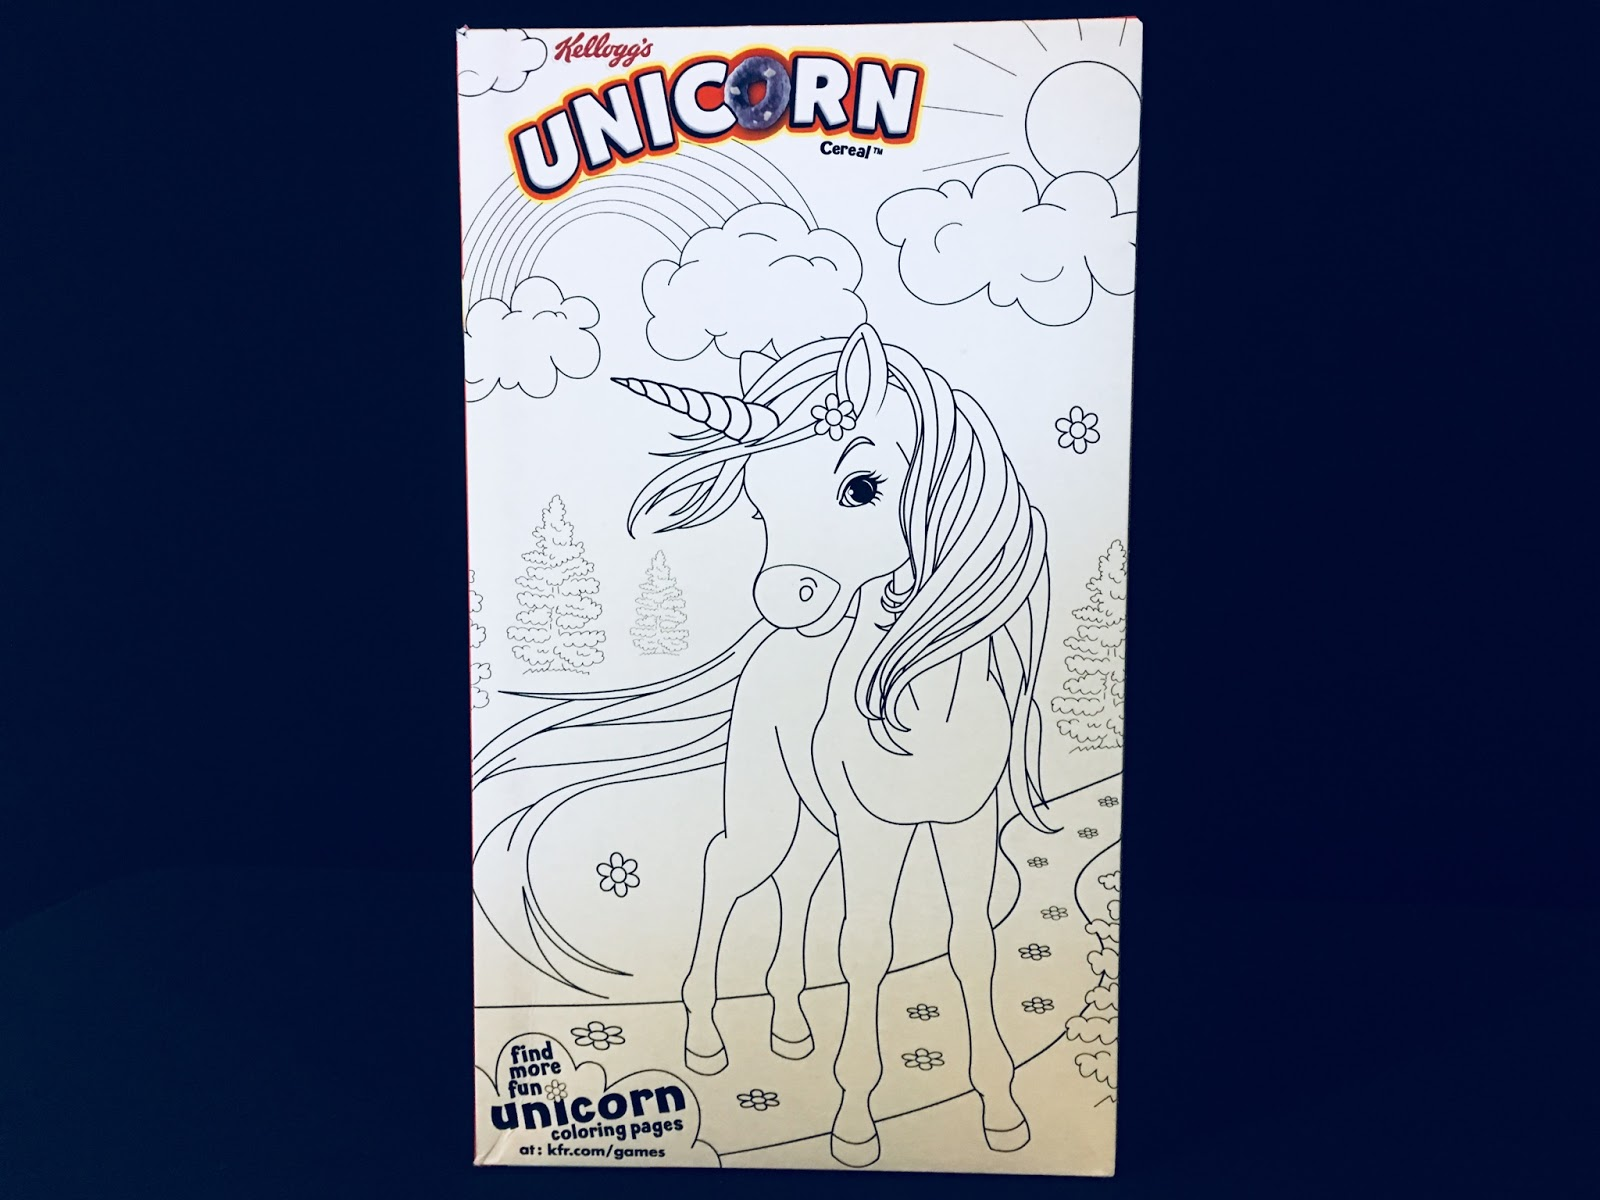 Jon Crunch Is Kellogg S Unicorn Cereal A Magical Breakfast